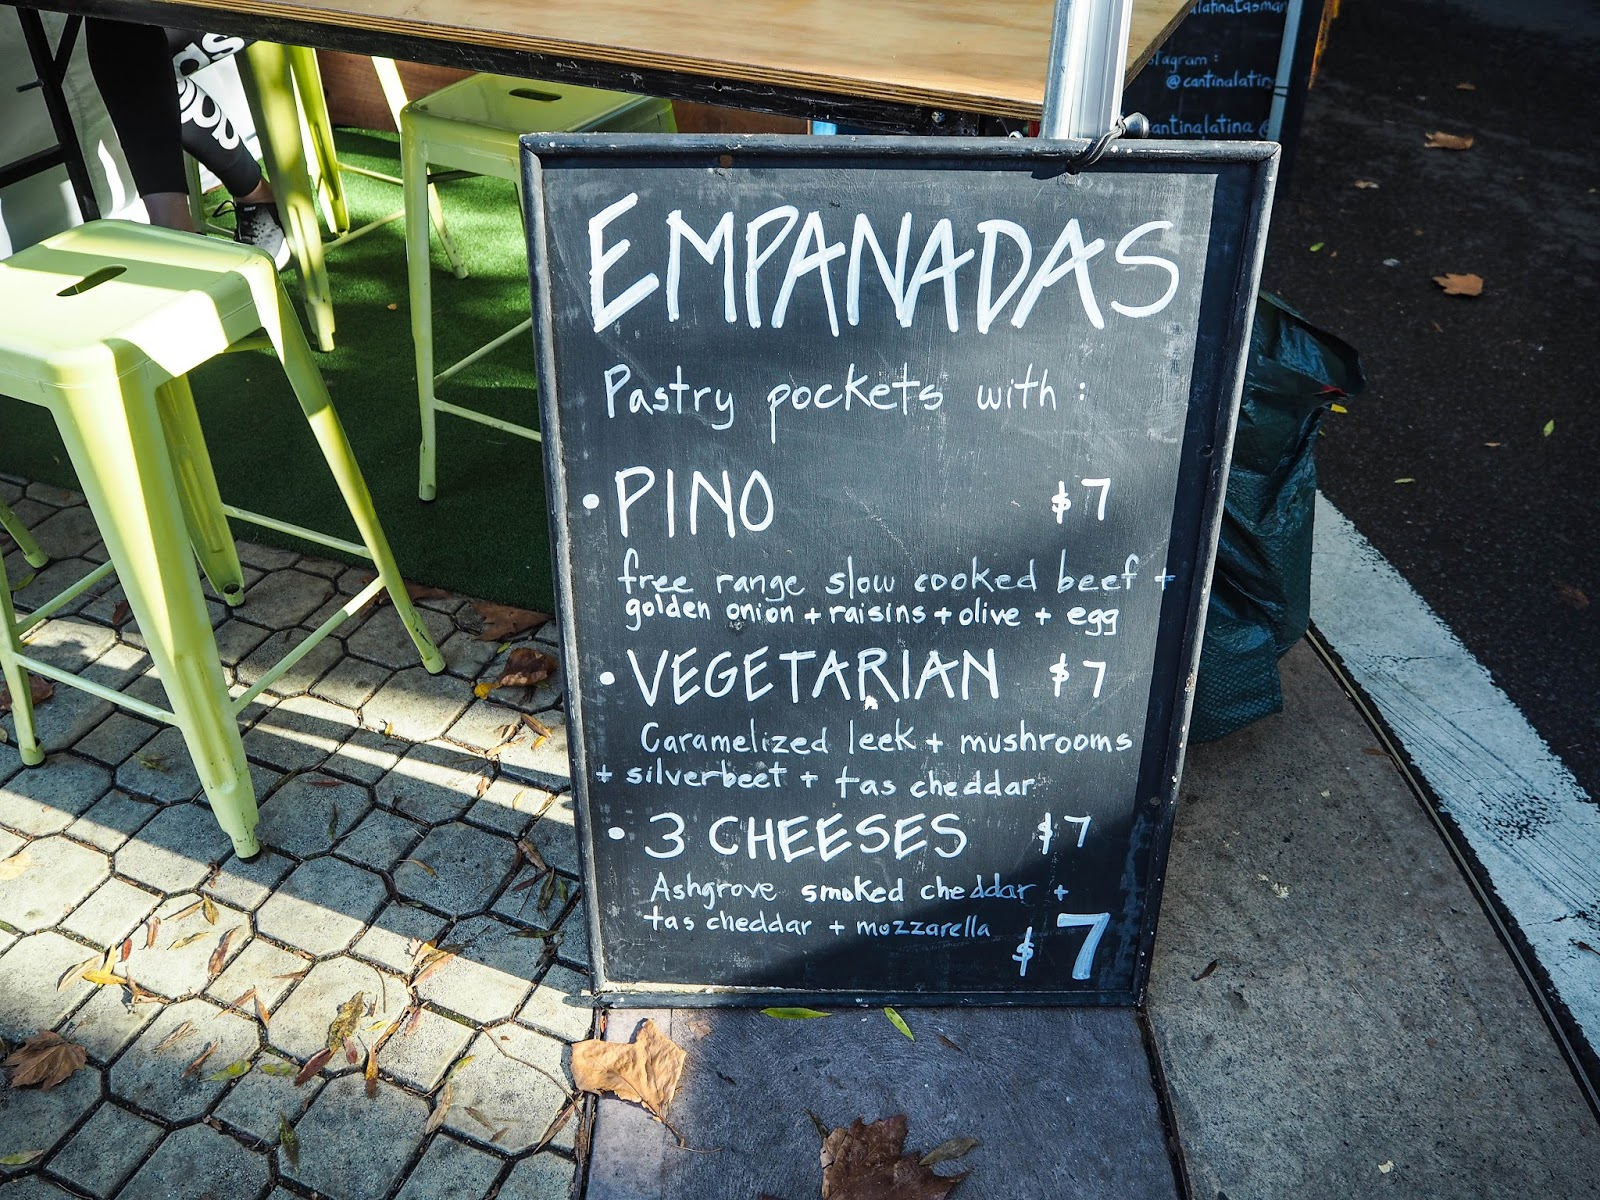 Cantina Latina sign for empanadas